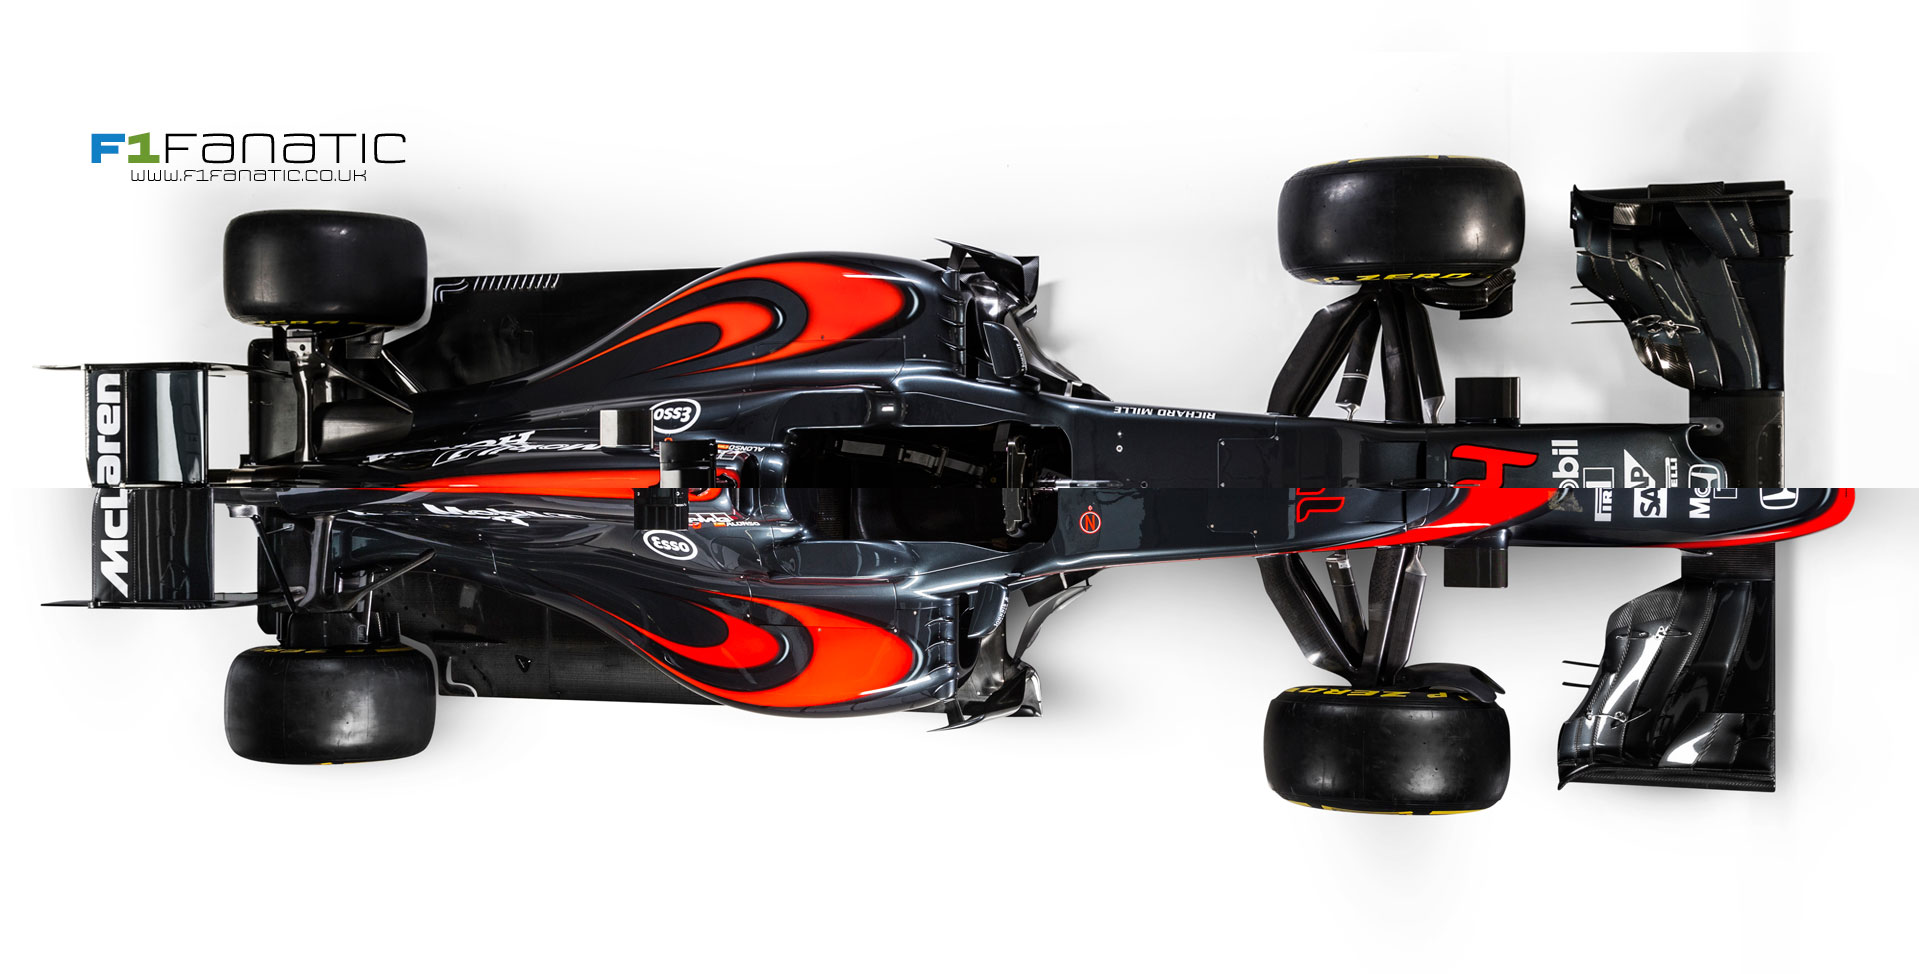 McLaren MP4-31 and MP4-30 comparison